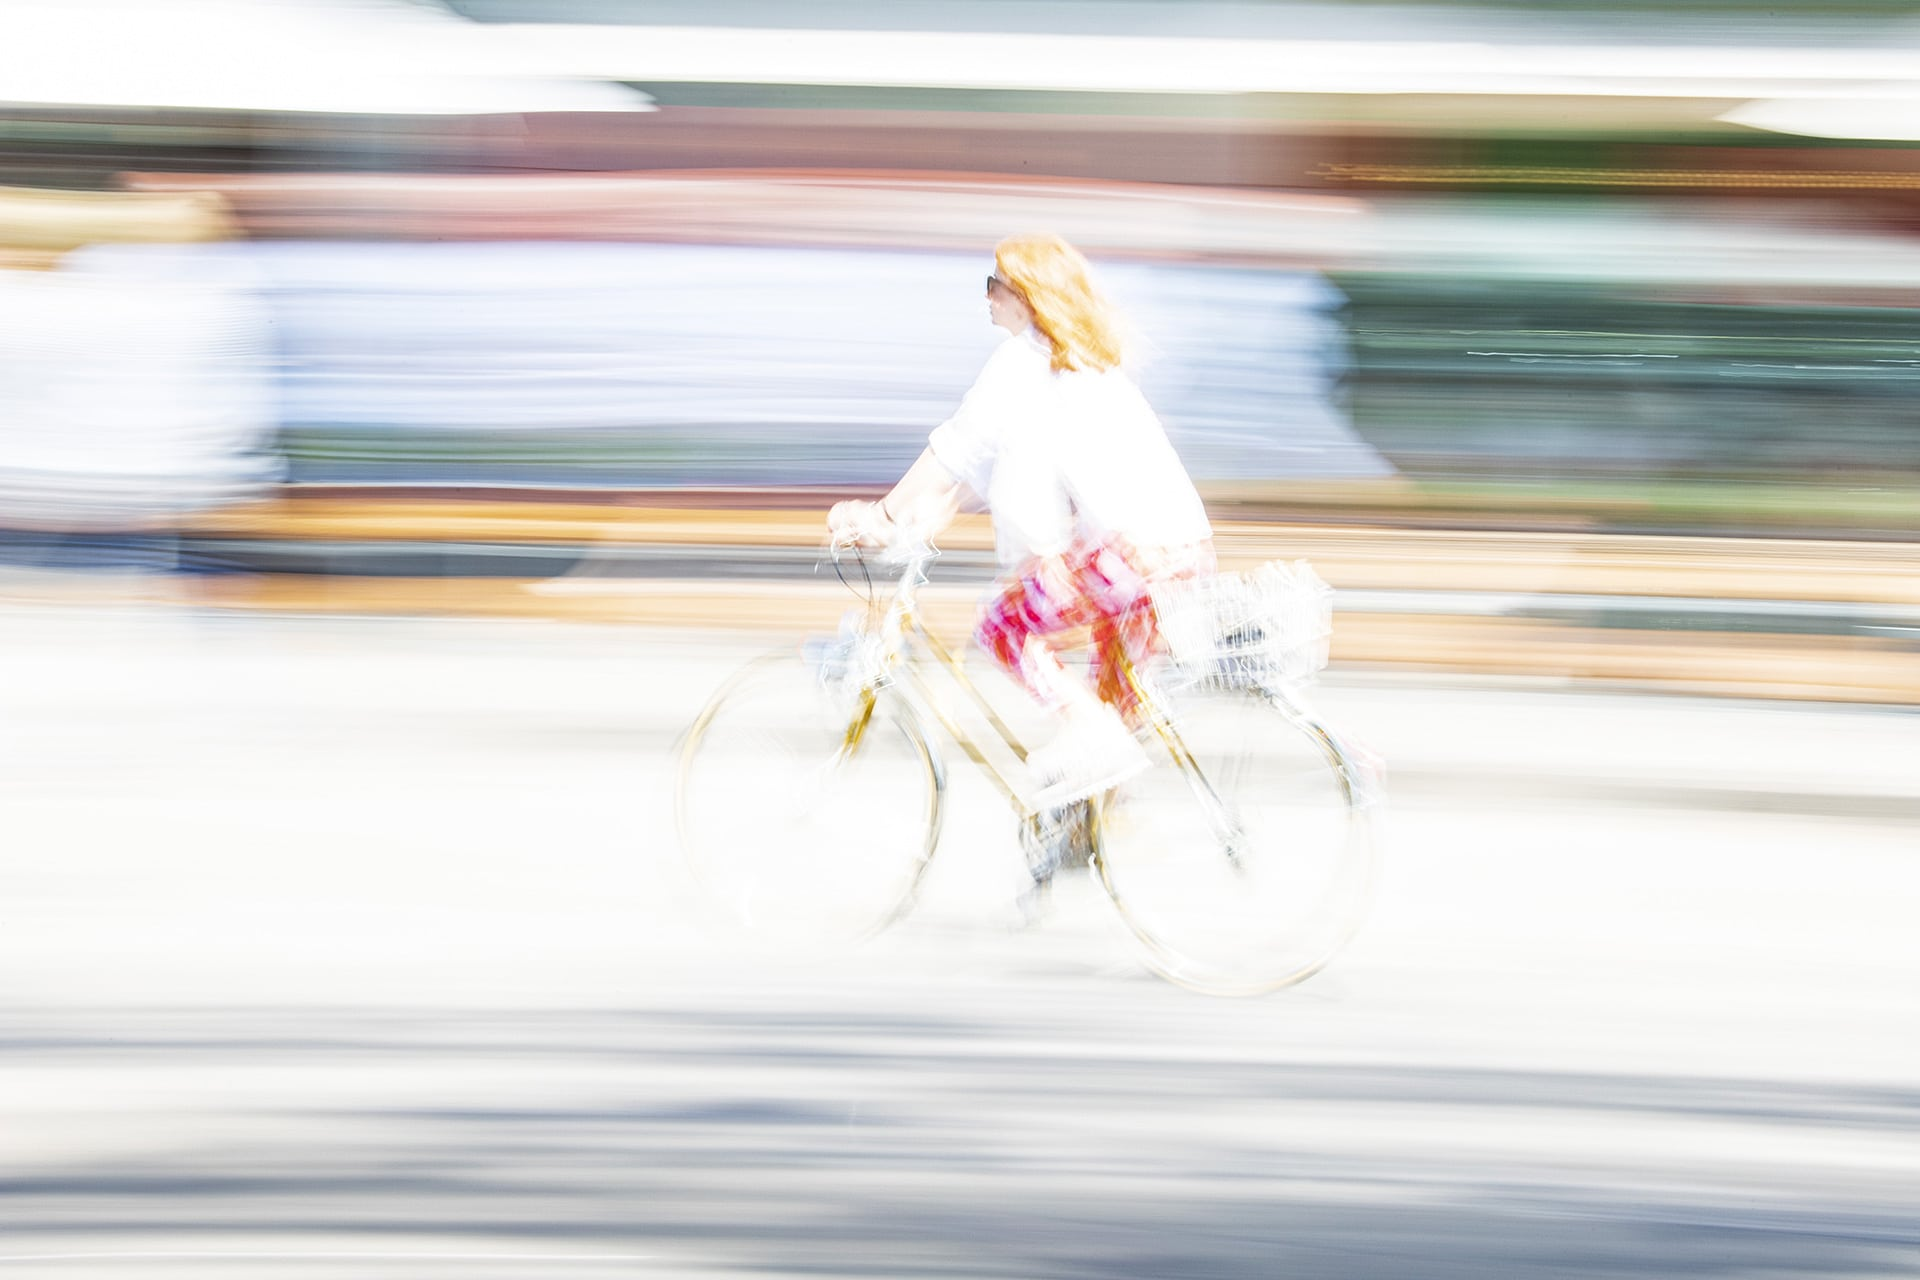 a bright, blurred image of a woman riding a bike with a crisp profile against stripes of colour.